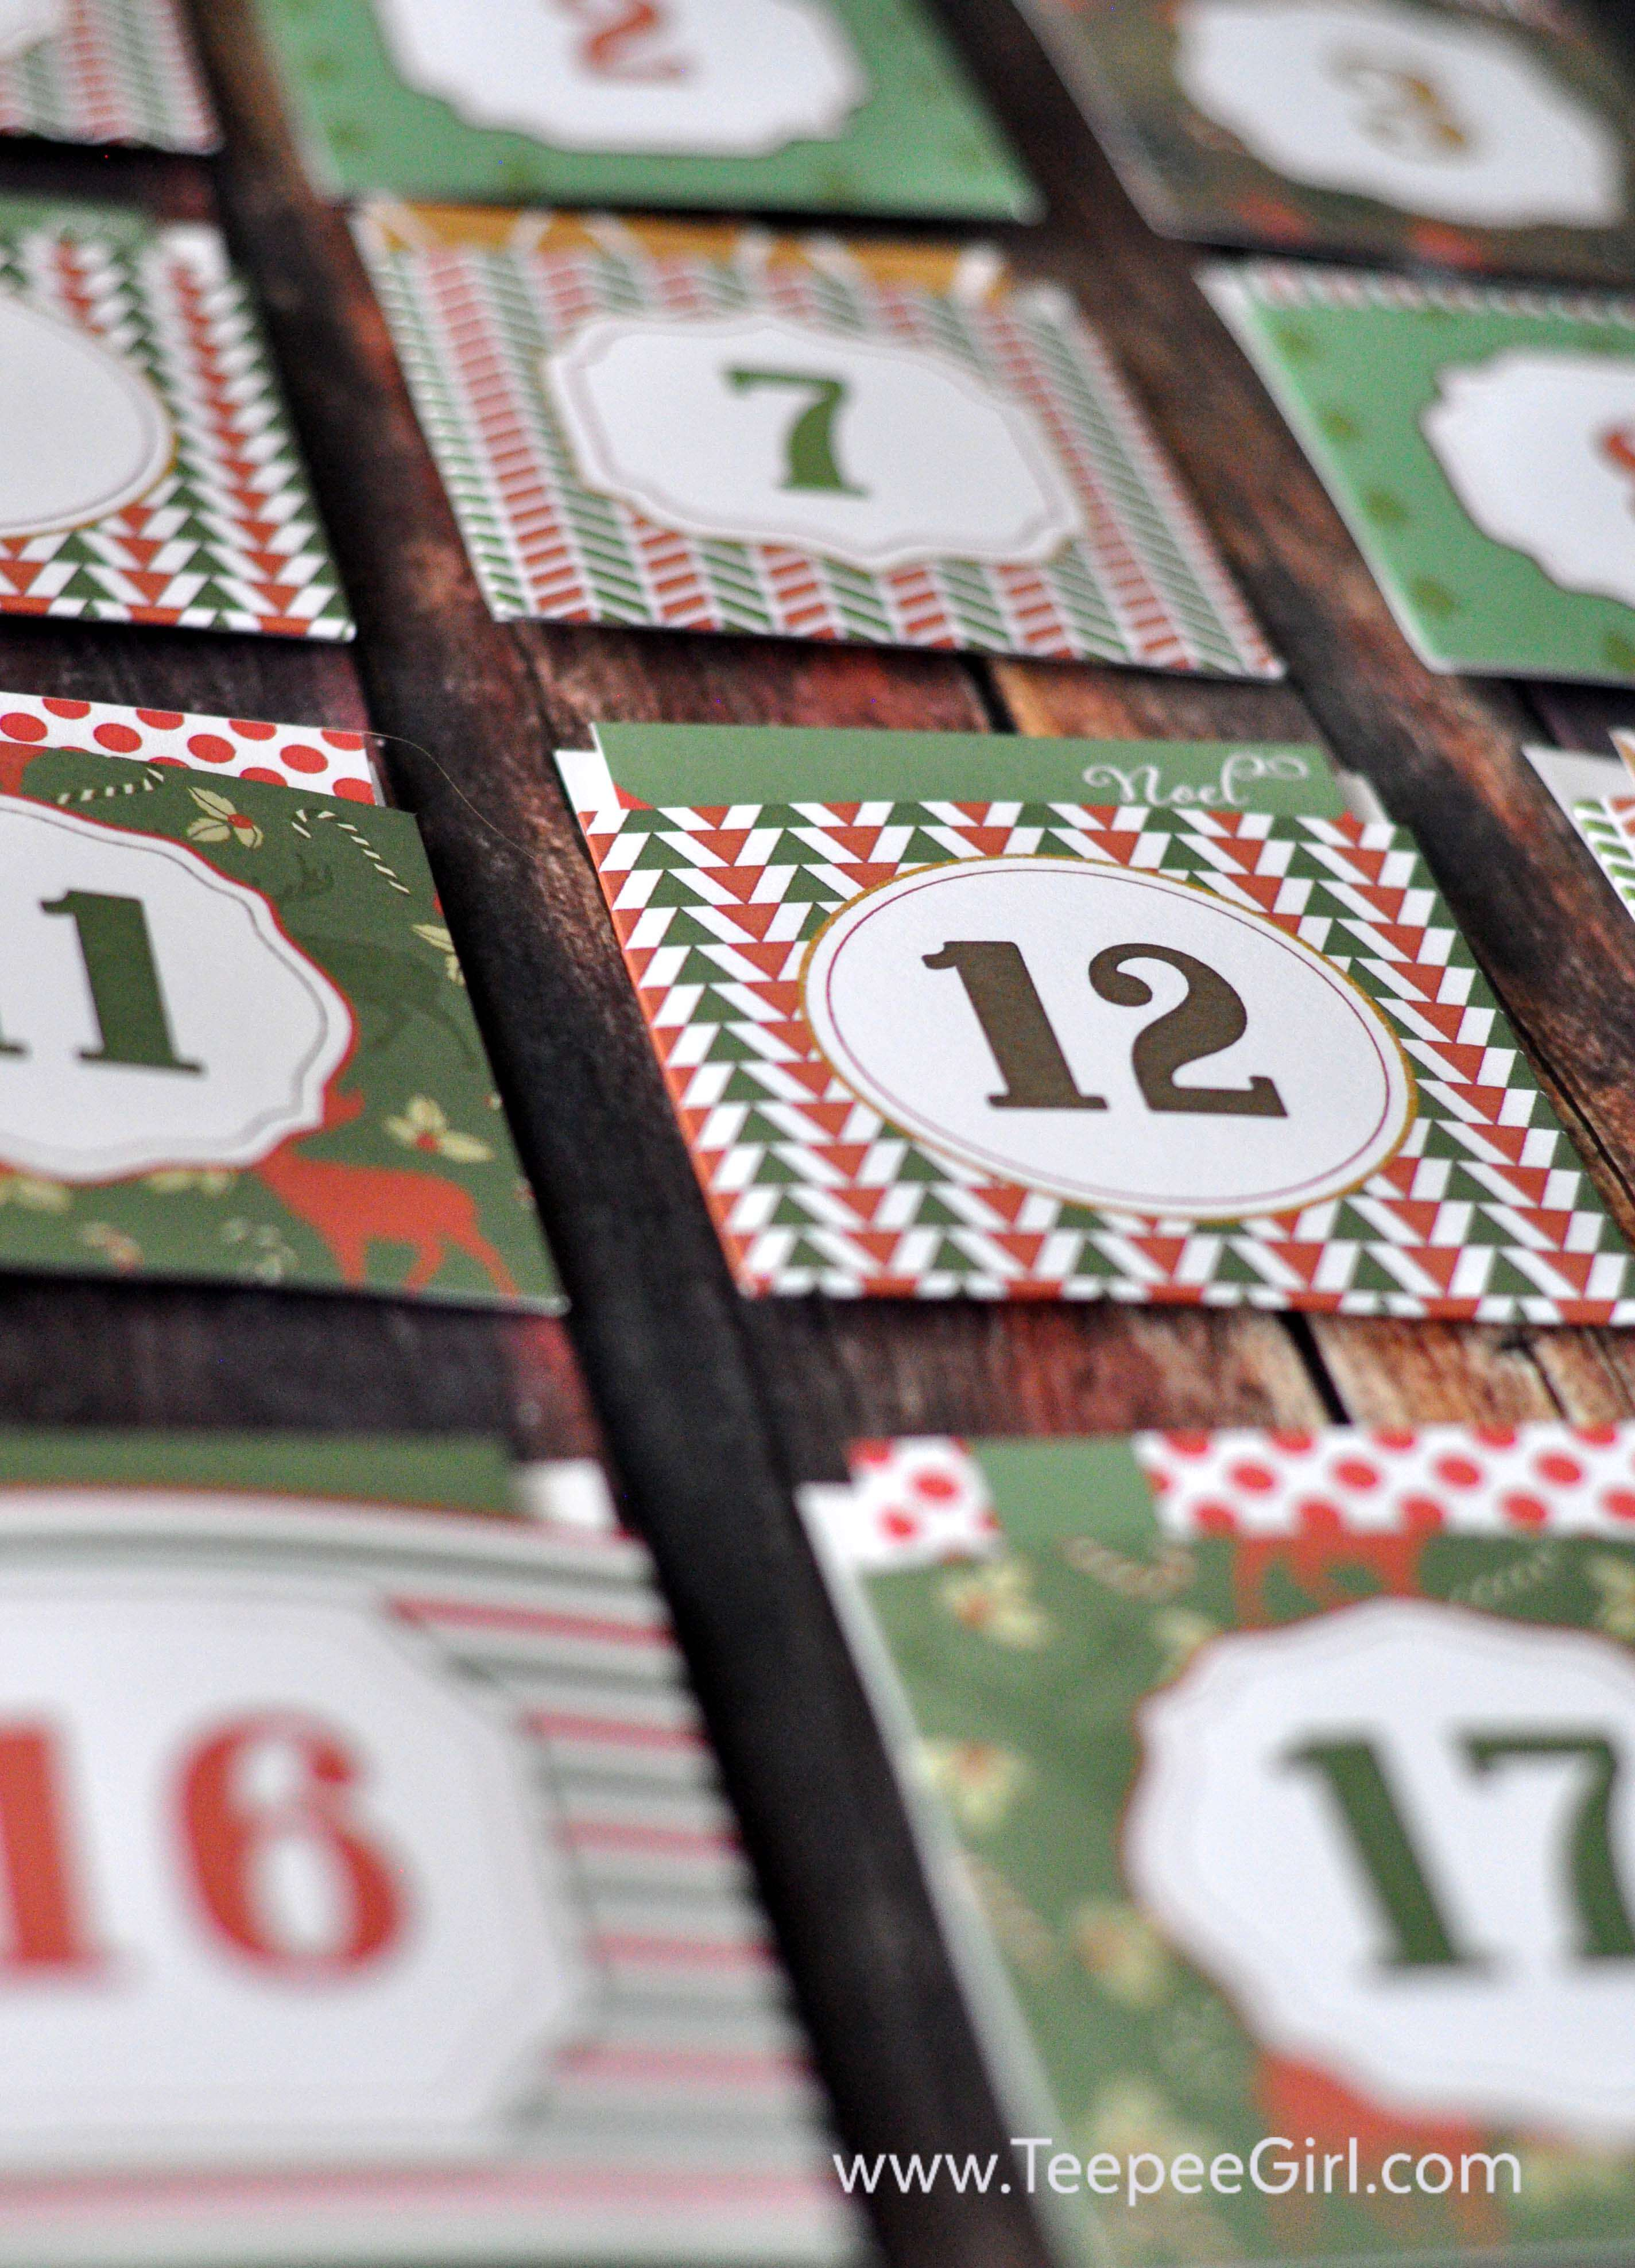 This FREE Christmas advent calendar is a great way to help kids engage in service all month long! Every night they can write what they have done to #LIGHTtheWORLD this holiday season. Grab the free calendar, plus lots of service ideas, at www.TeepeeGirl.com.